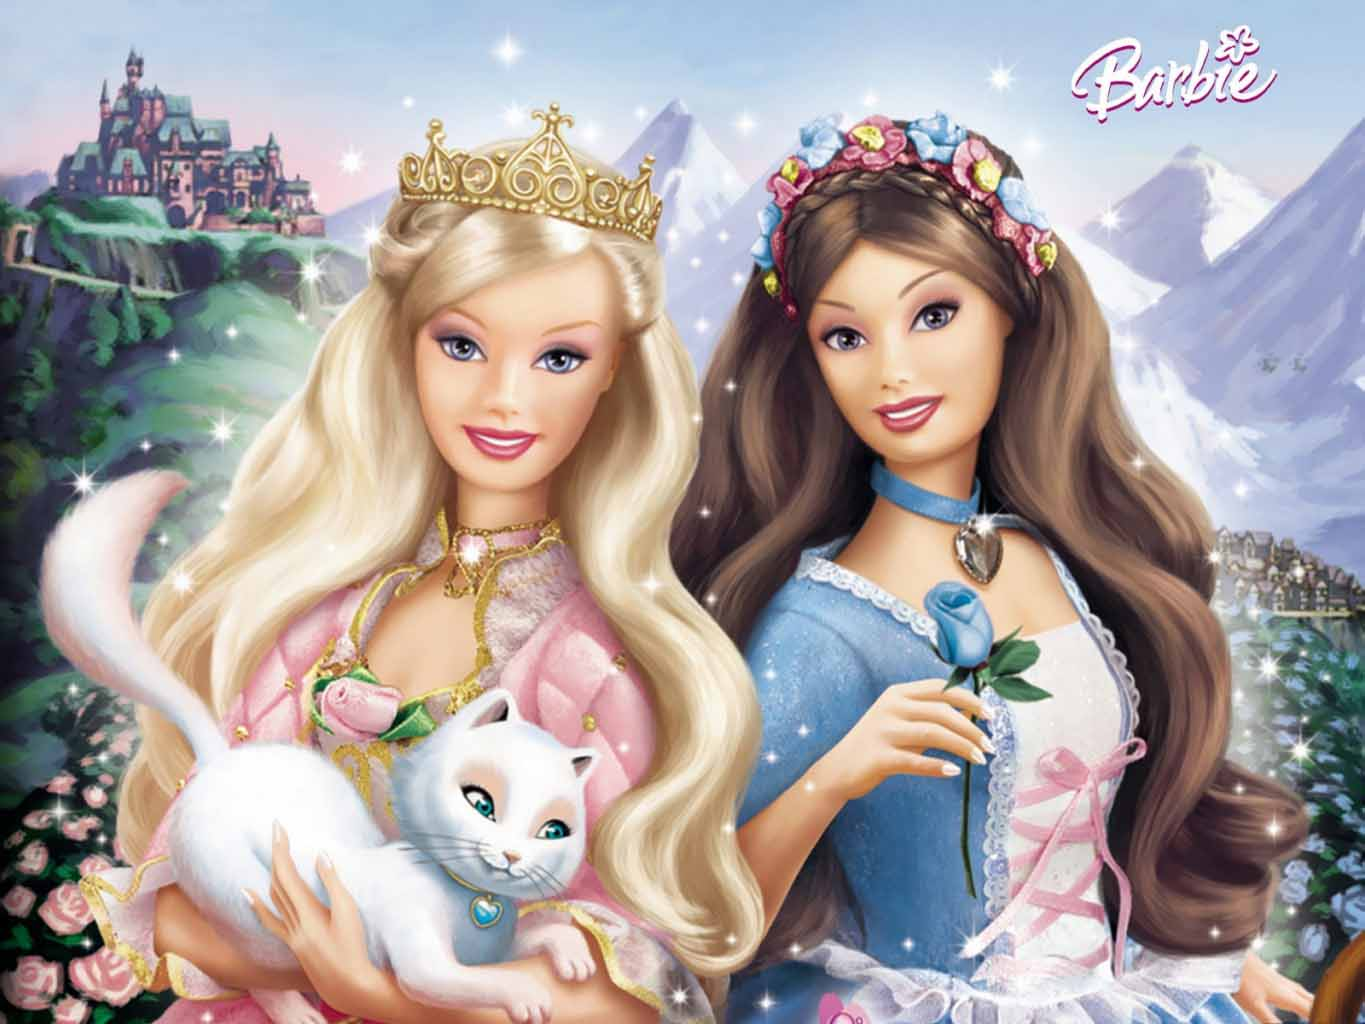 barbie with her friends pictures